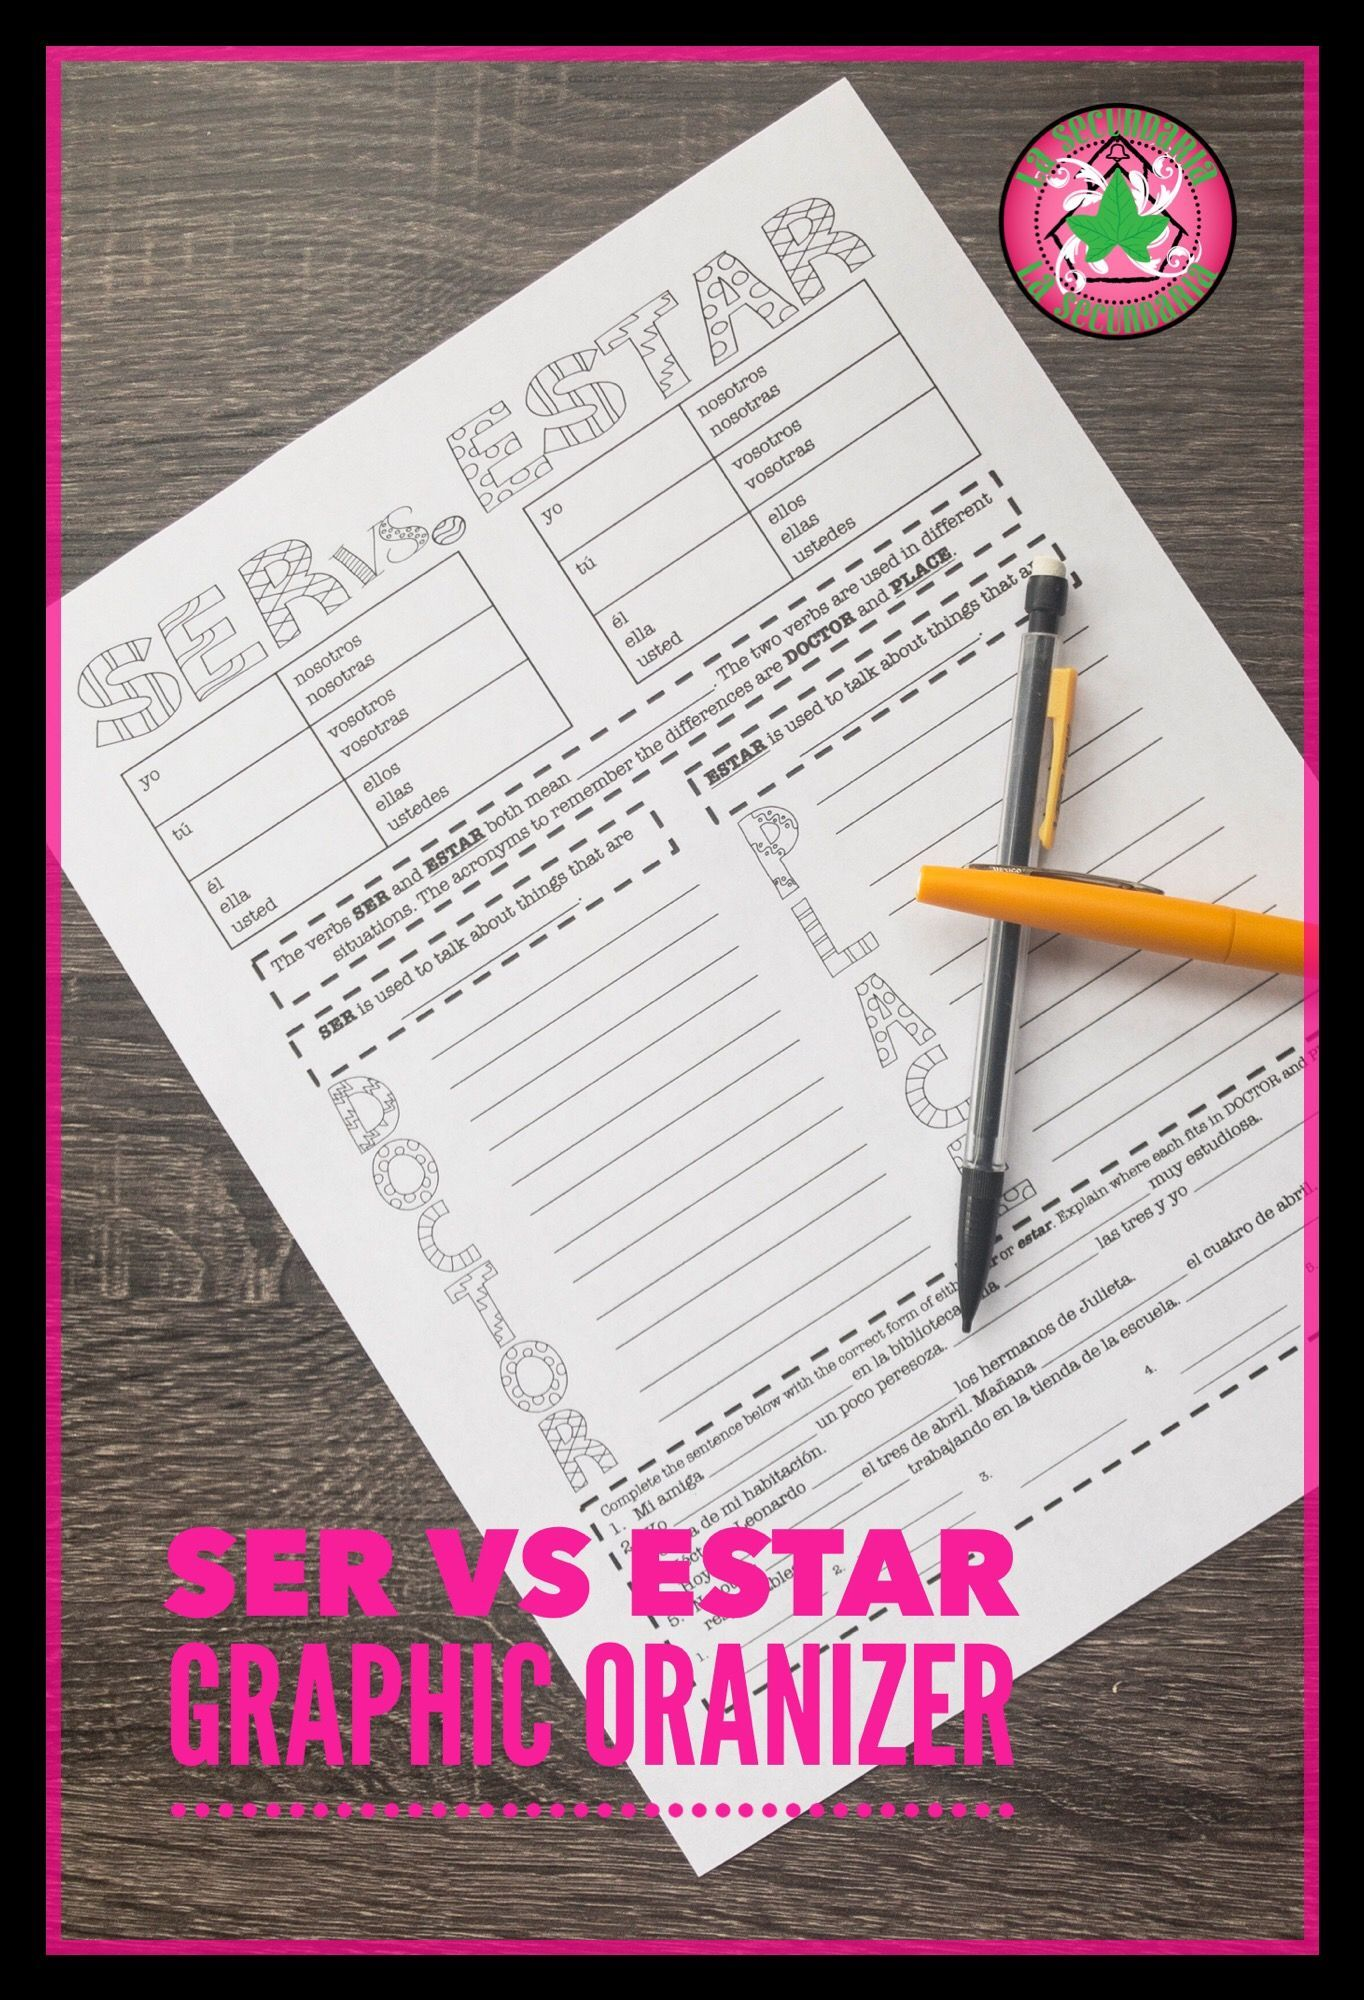 Help Student Better Understand Ser Vs Estar Using This